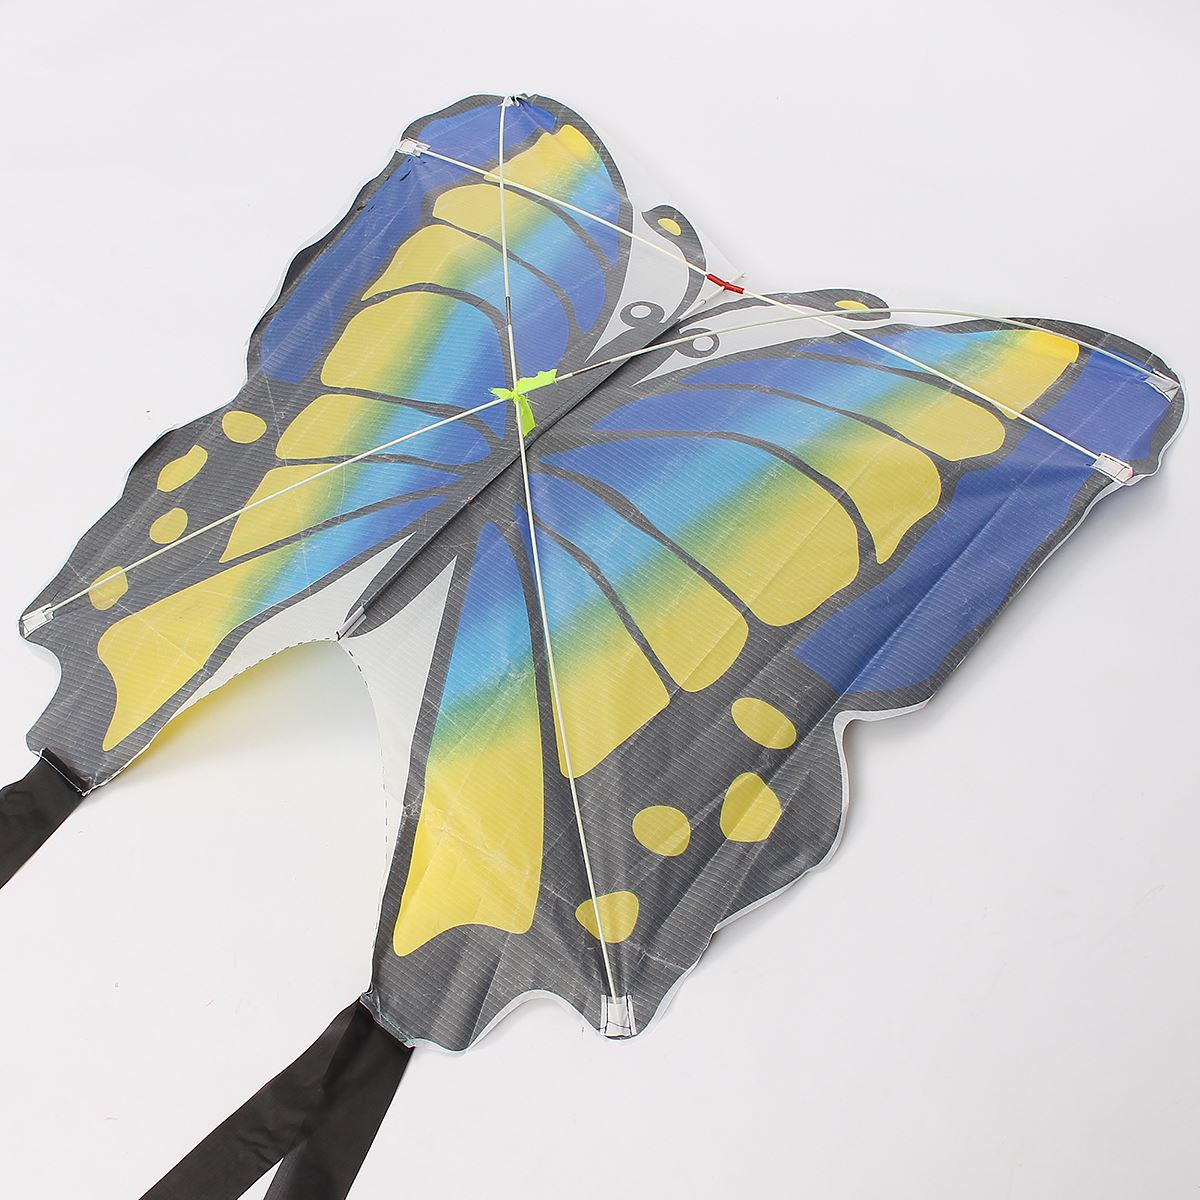 Butterfly-Kite-Easy-to-Fly-Single-Line-Kite-Tail-15M-For-Kids-Outdoor-Funny-Sports-Toy-Gift-Funny-Sport-Outdoor-Playing-Toys-5